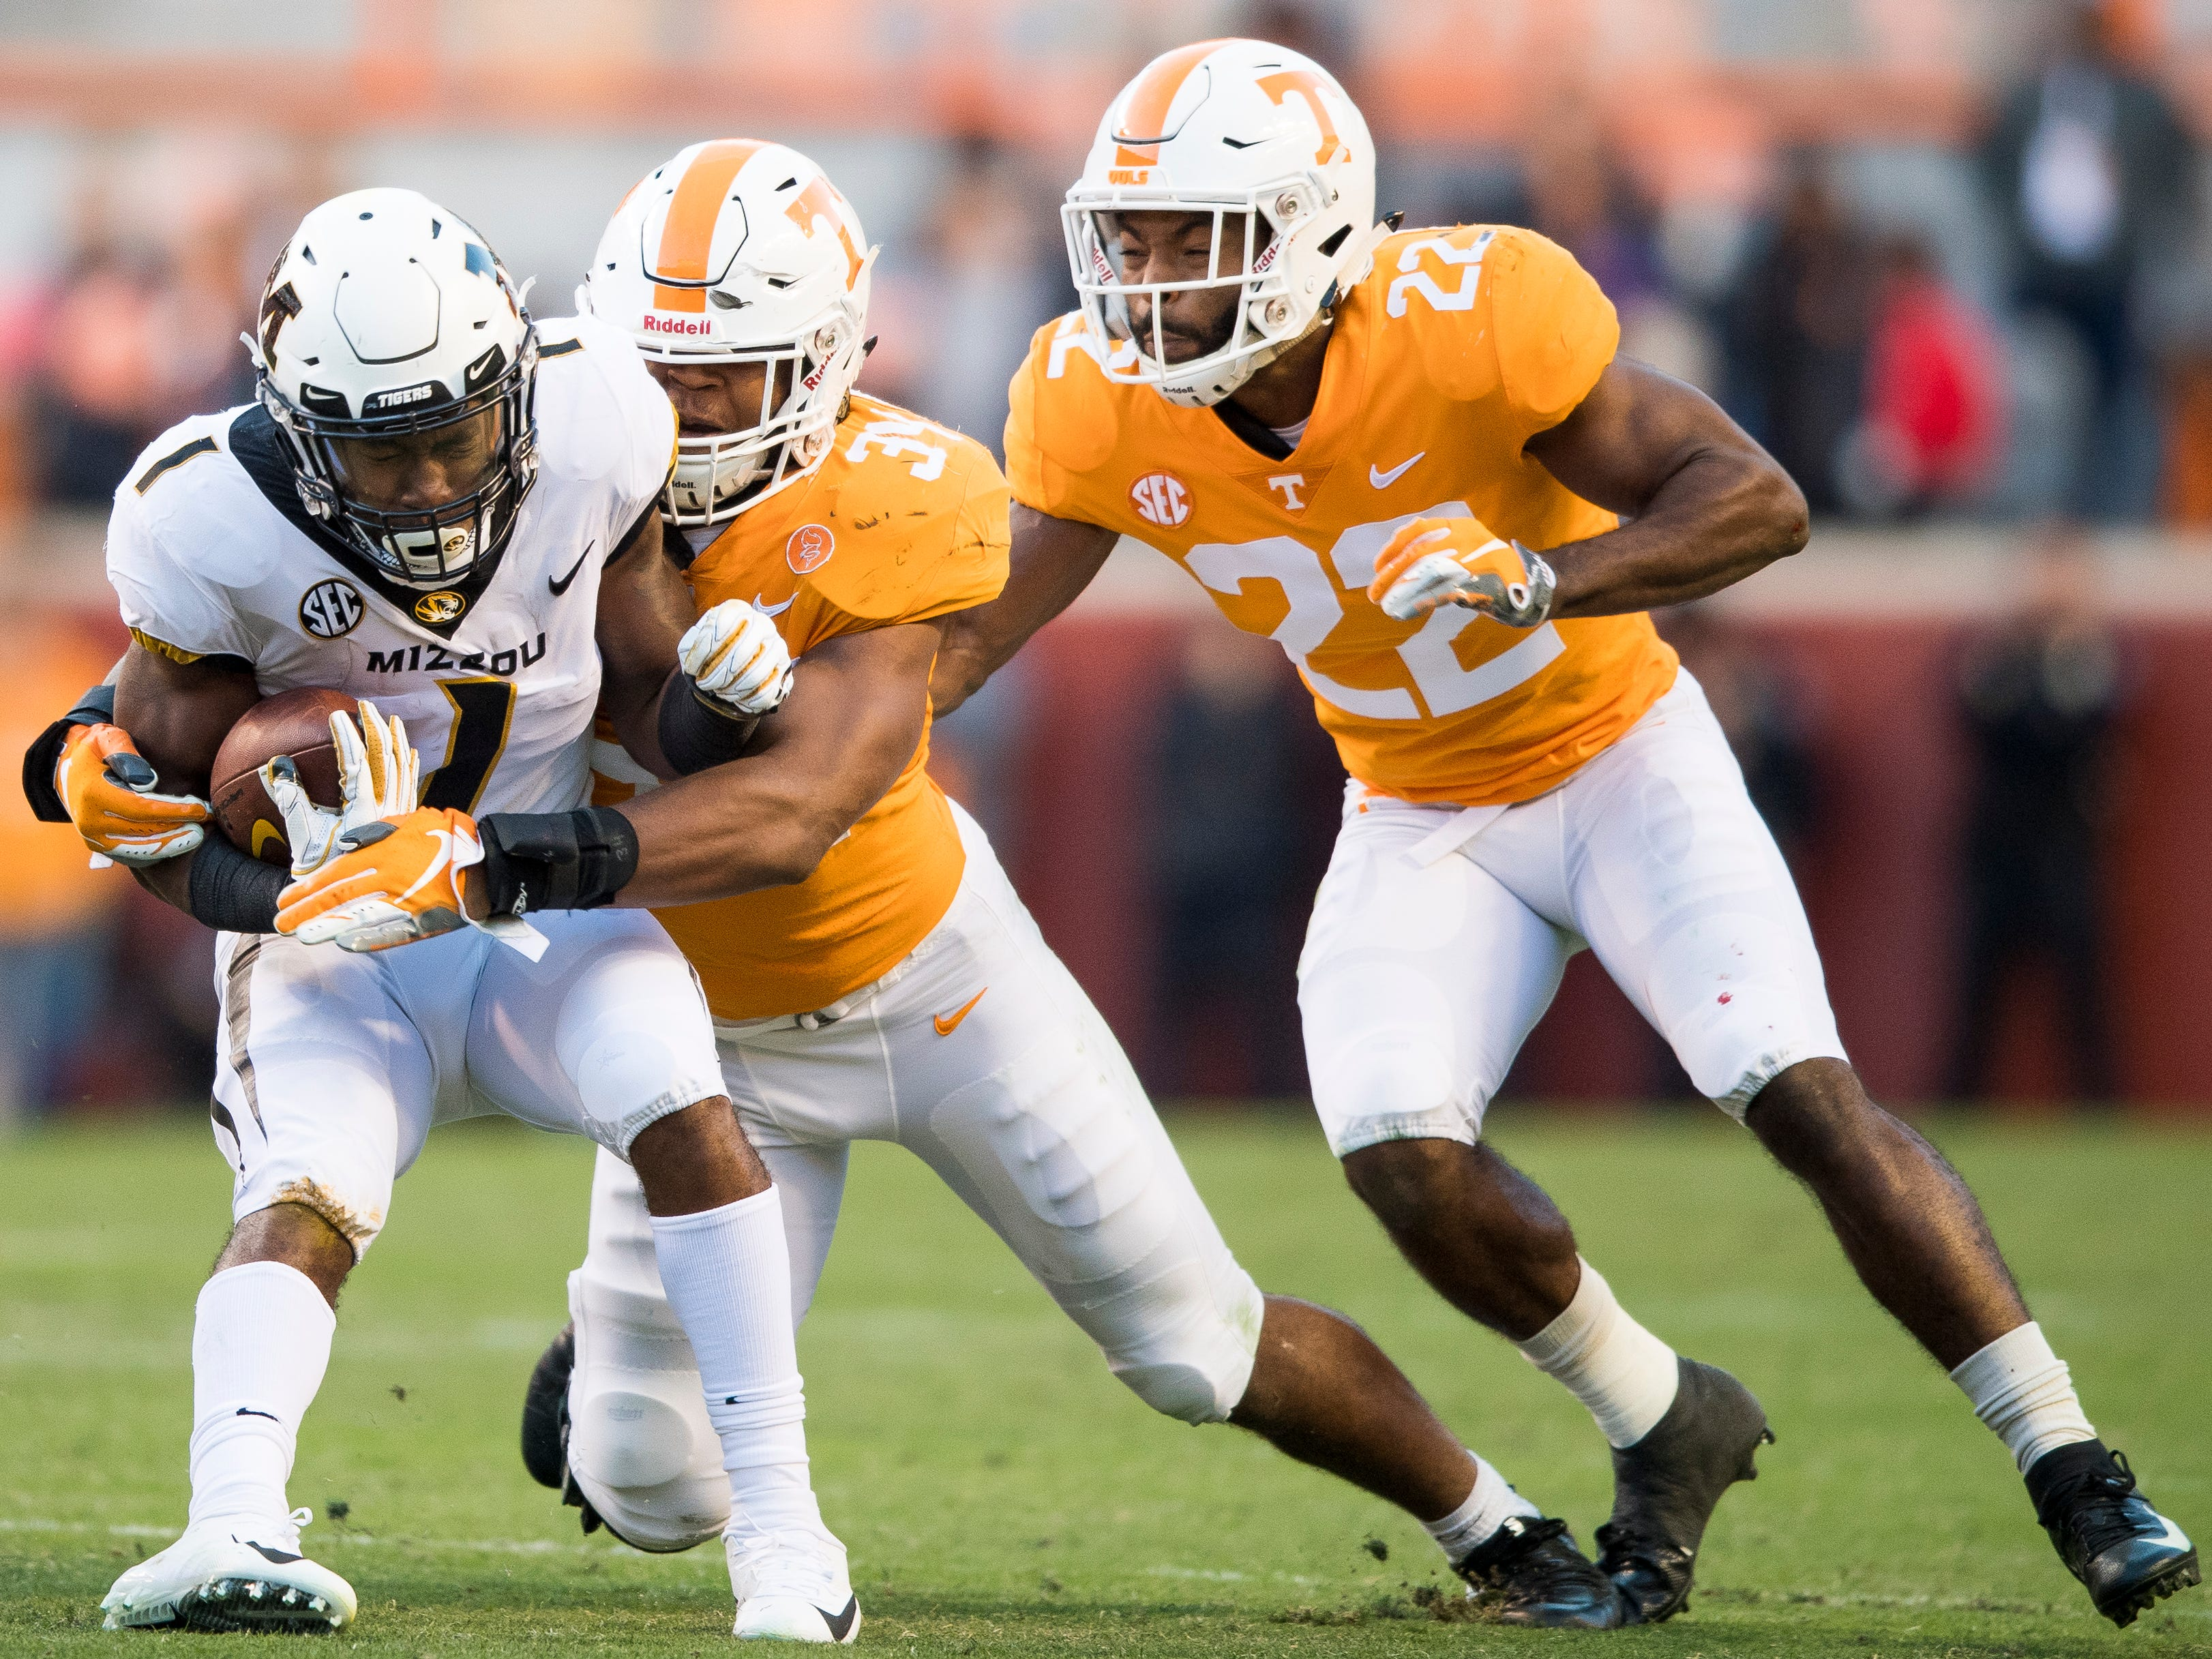 Tennessee linebacker Darrin Kirkland Jr. (34) takes down Missouri running back Tyler Badie (1) during the Tennessee Volunteers game against the Missouri Tigers in Neyland Stadium on Saturday, November 17, 2018.